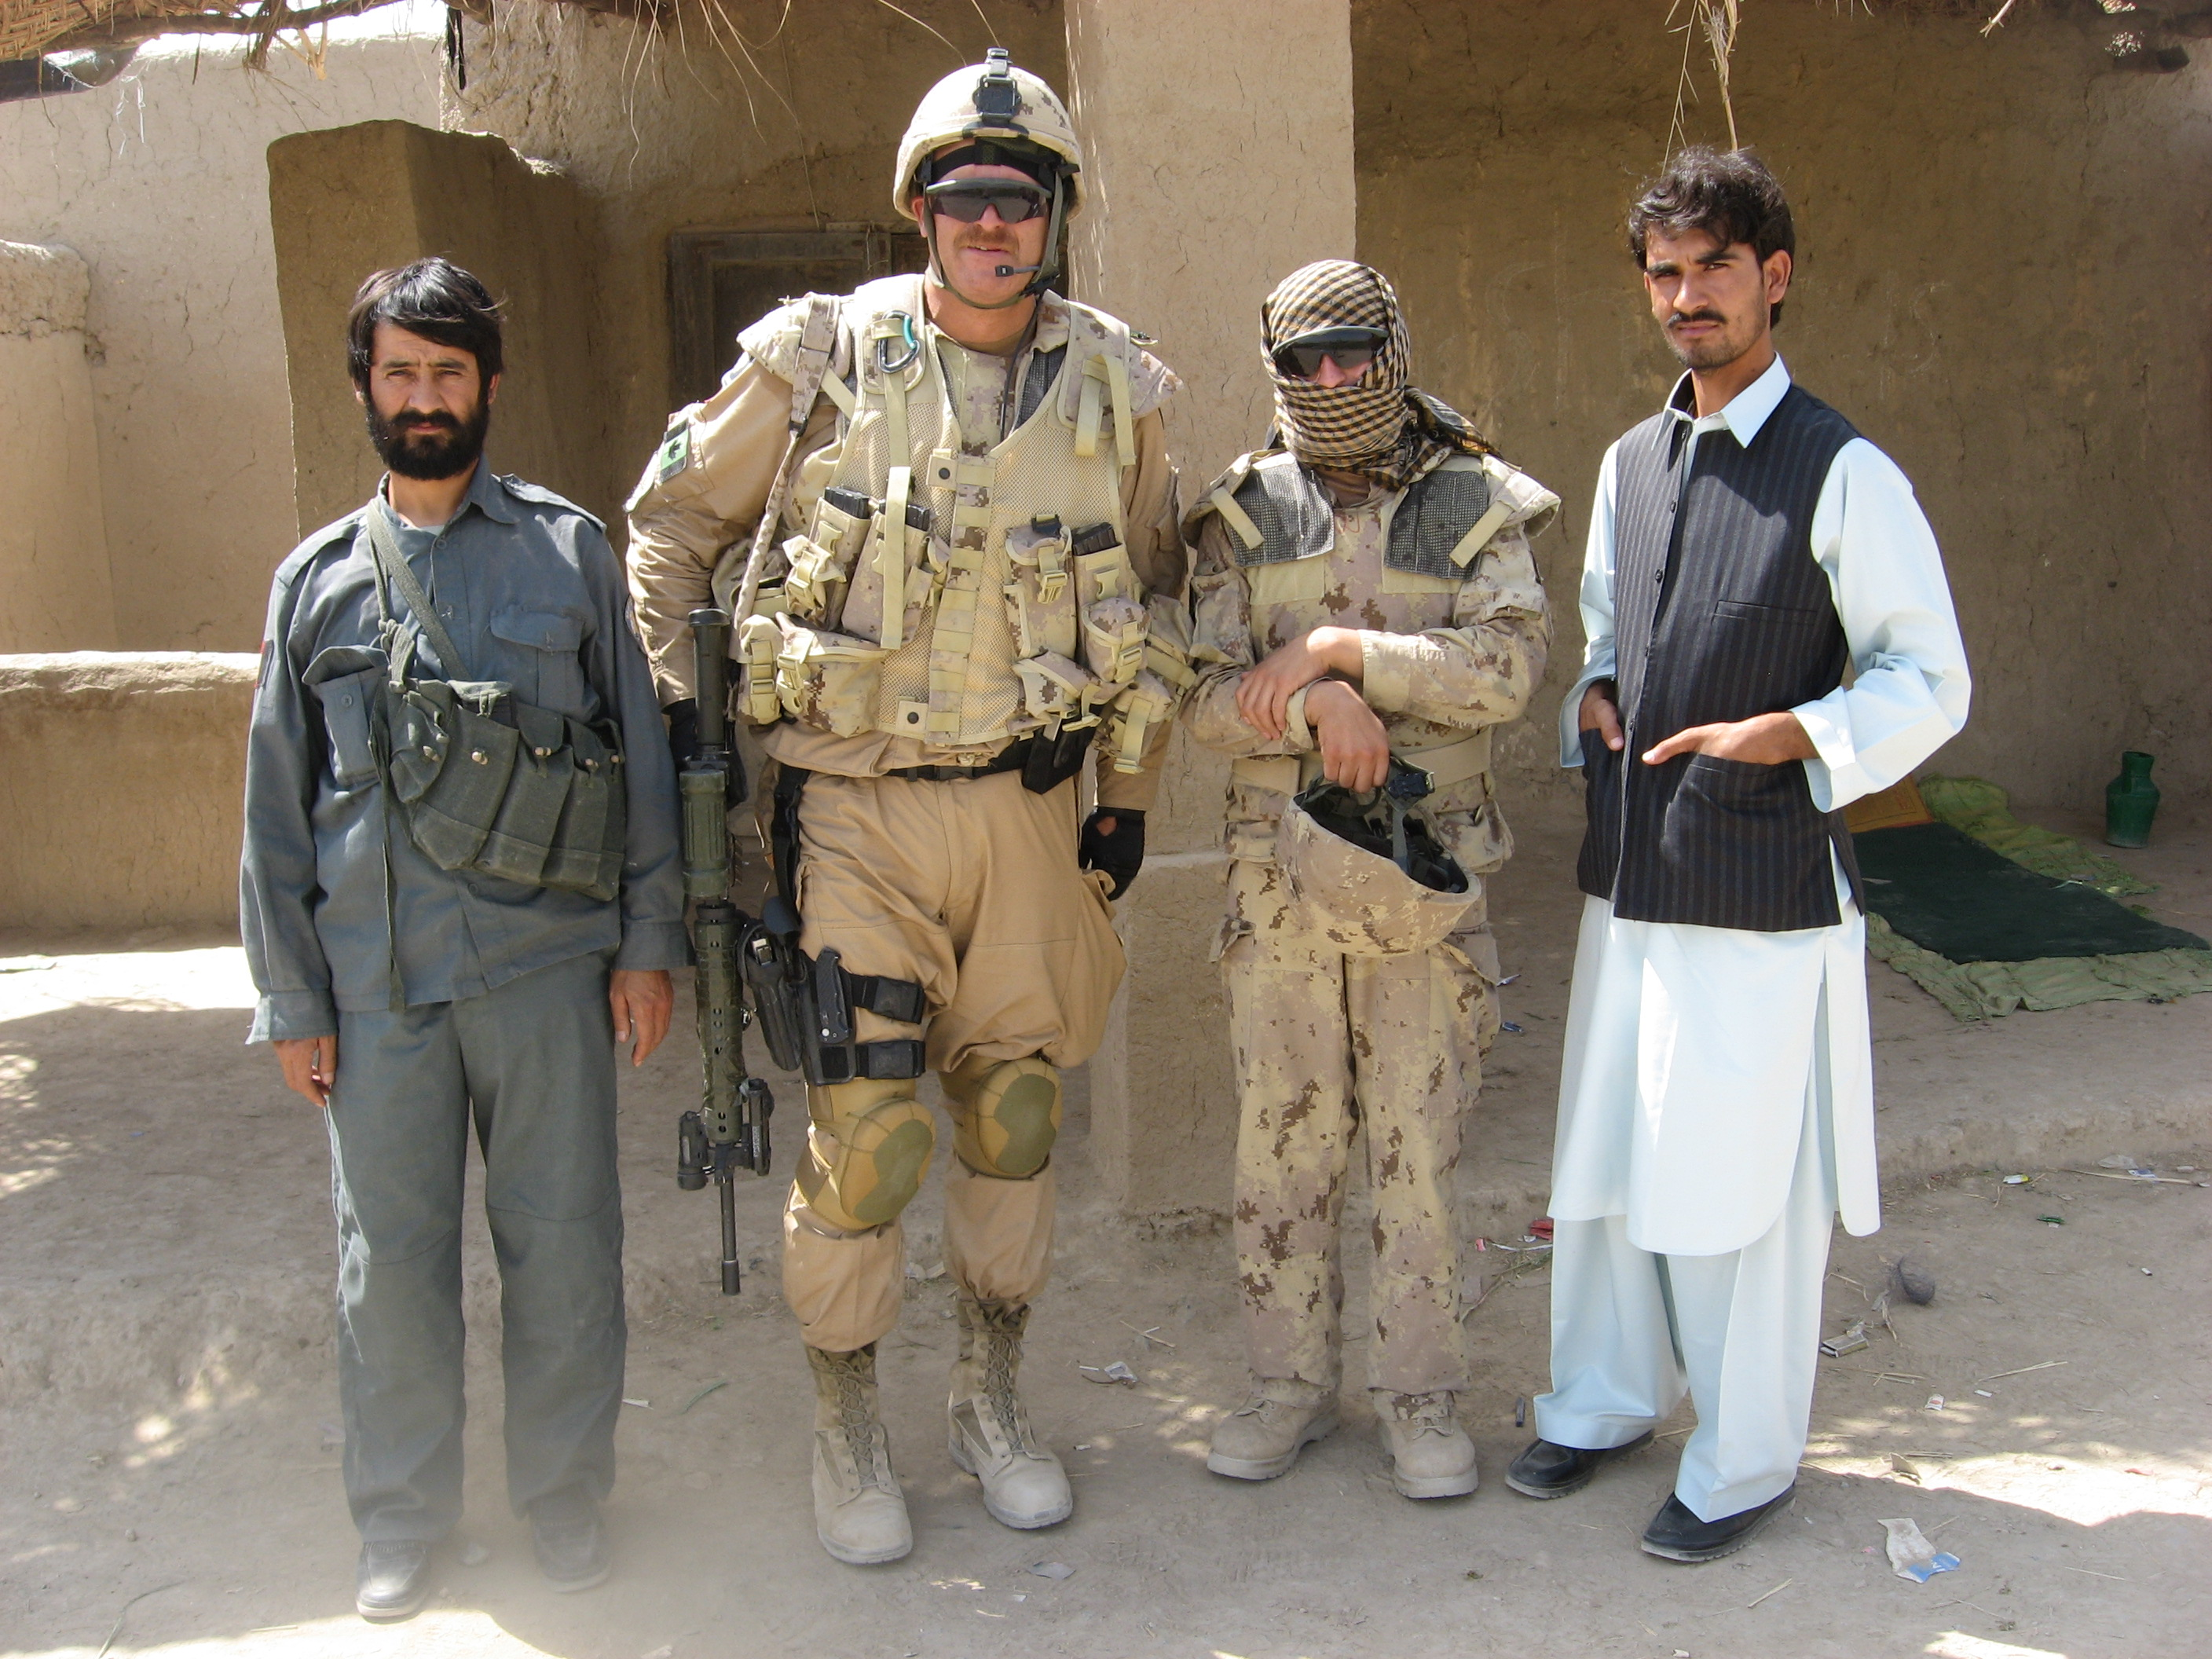 Sgt. Coakeley with local ANP authorities at the scene of an IED find, Kandahar City